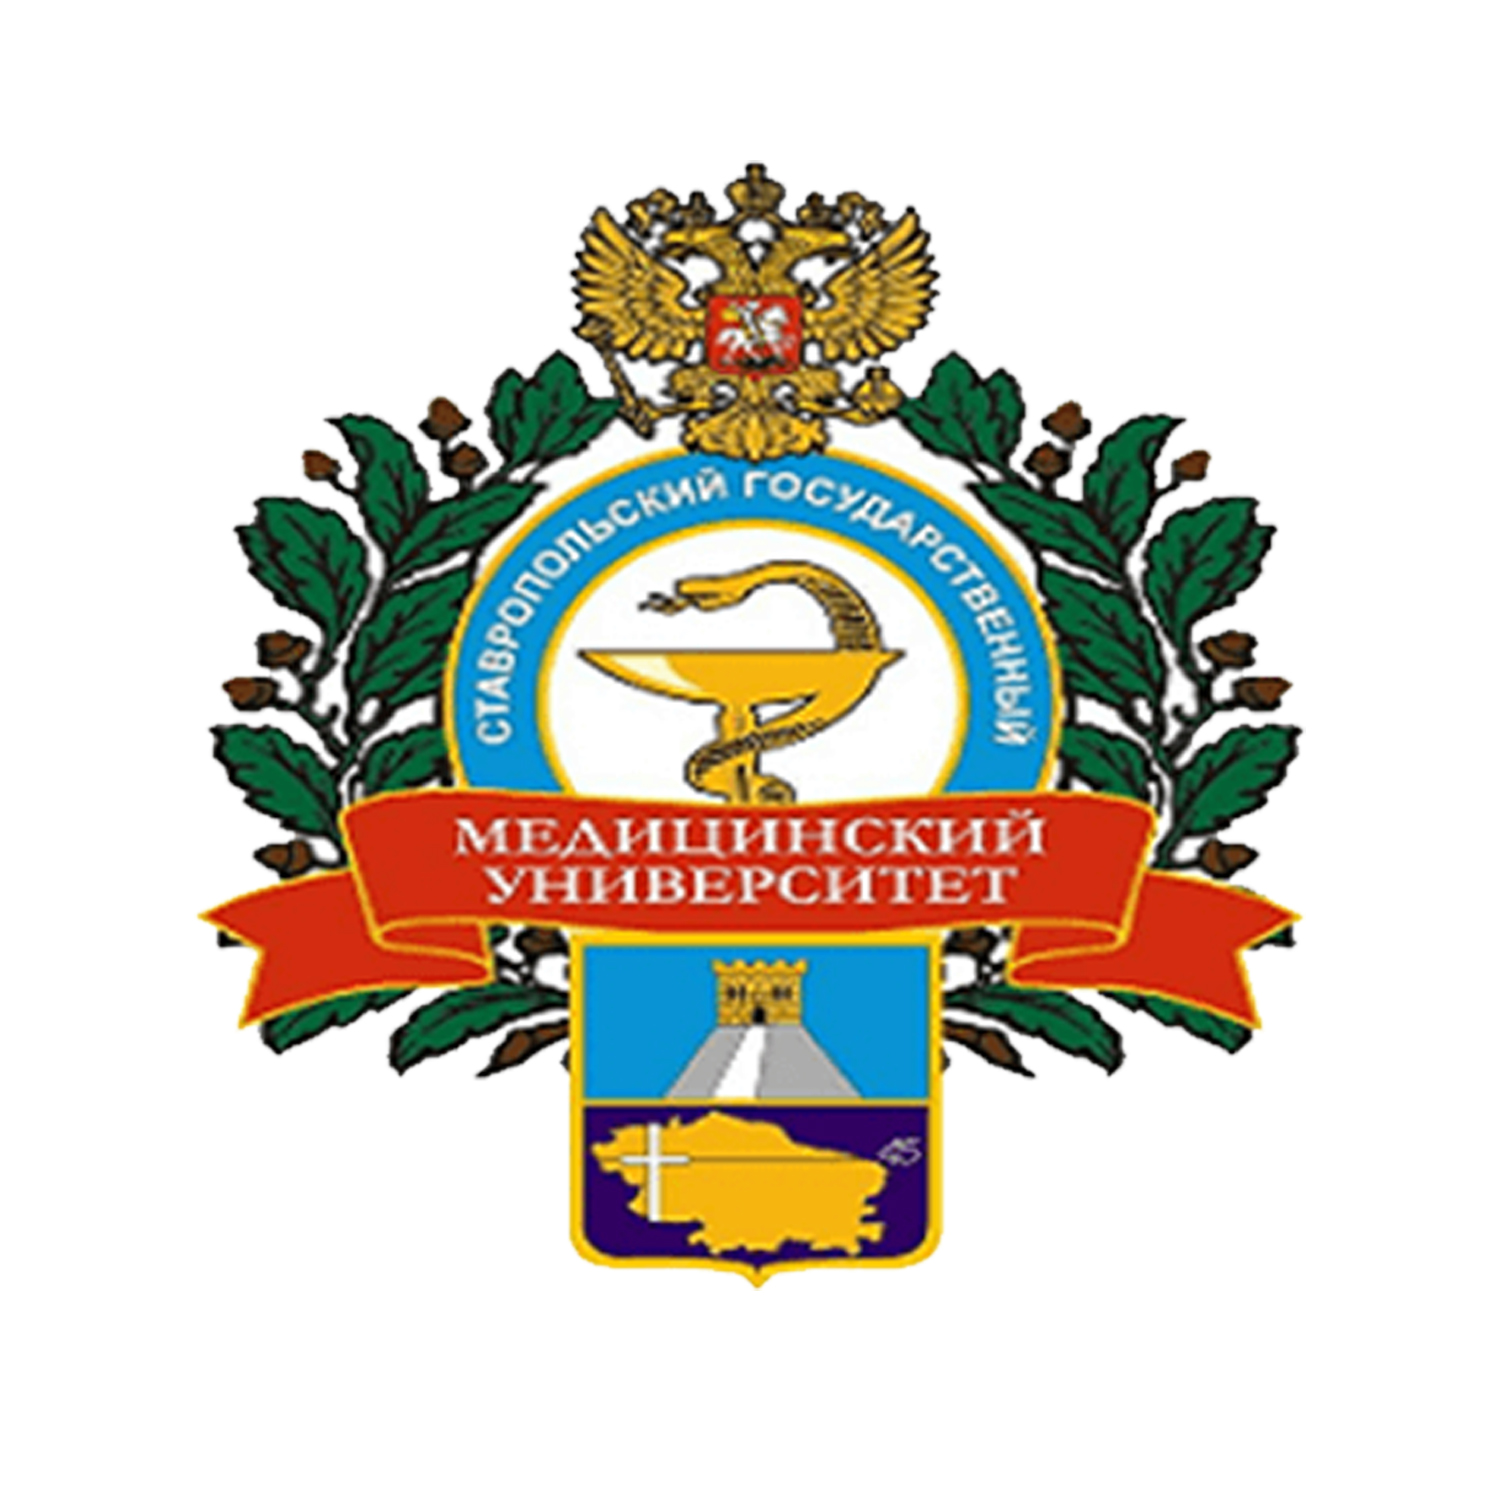 stavropol state medical university logo